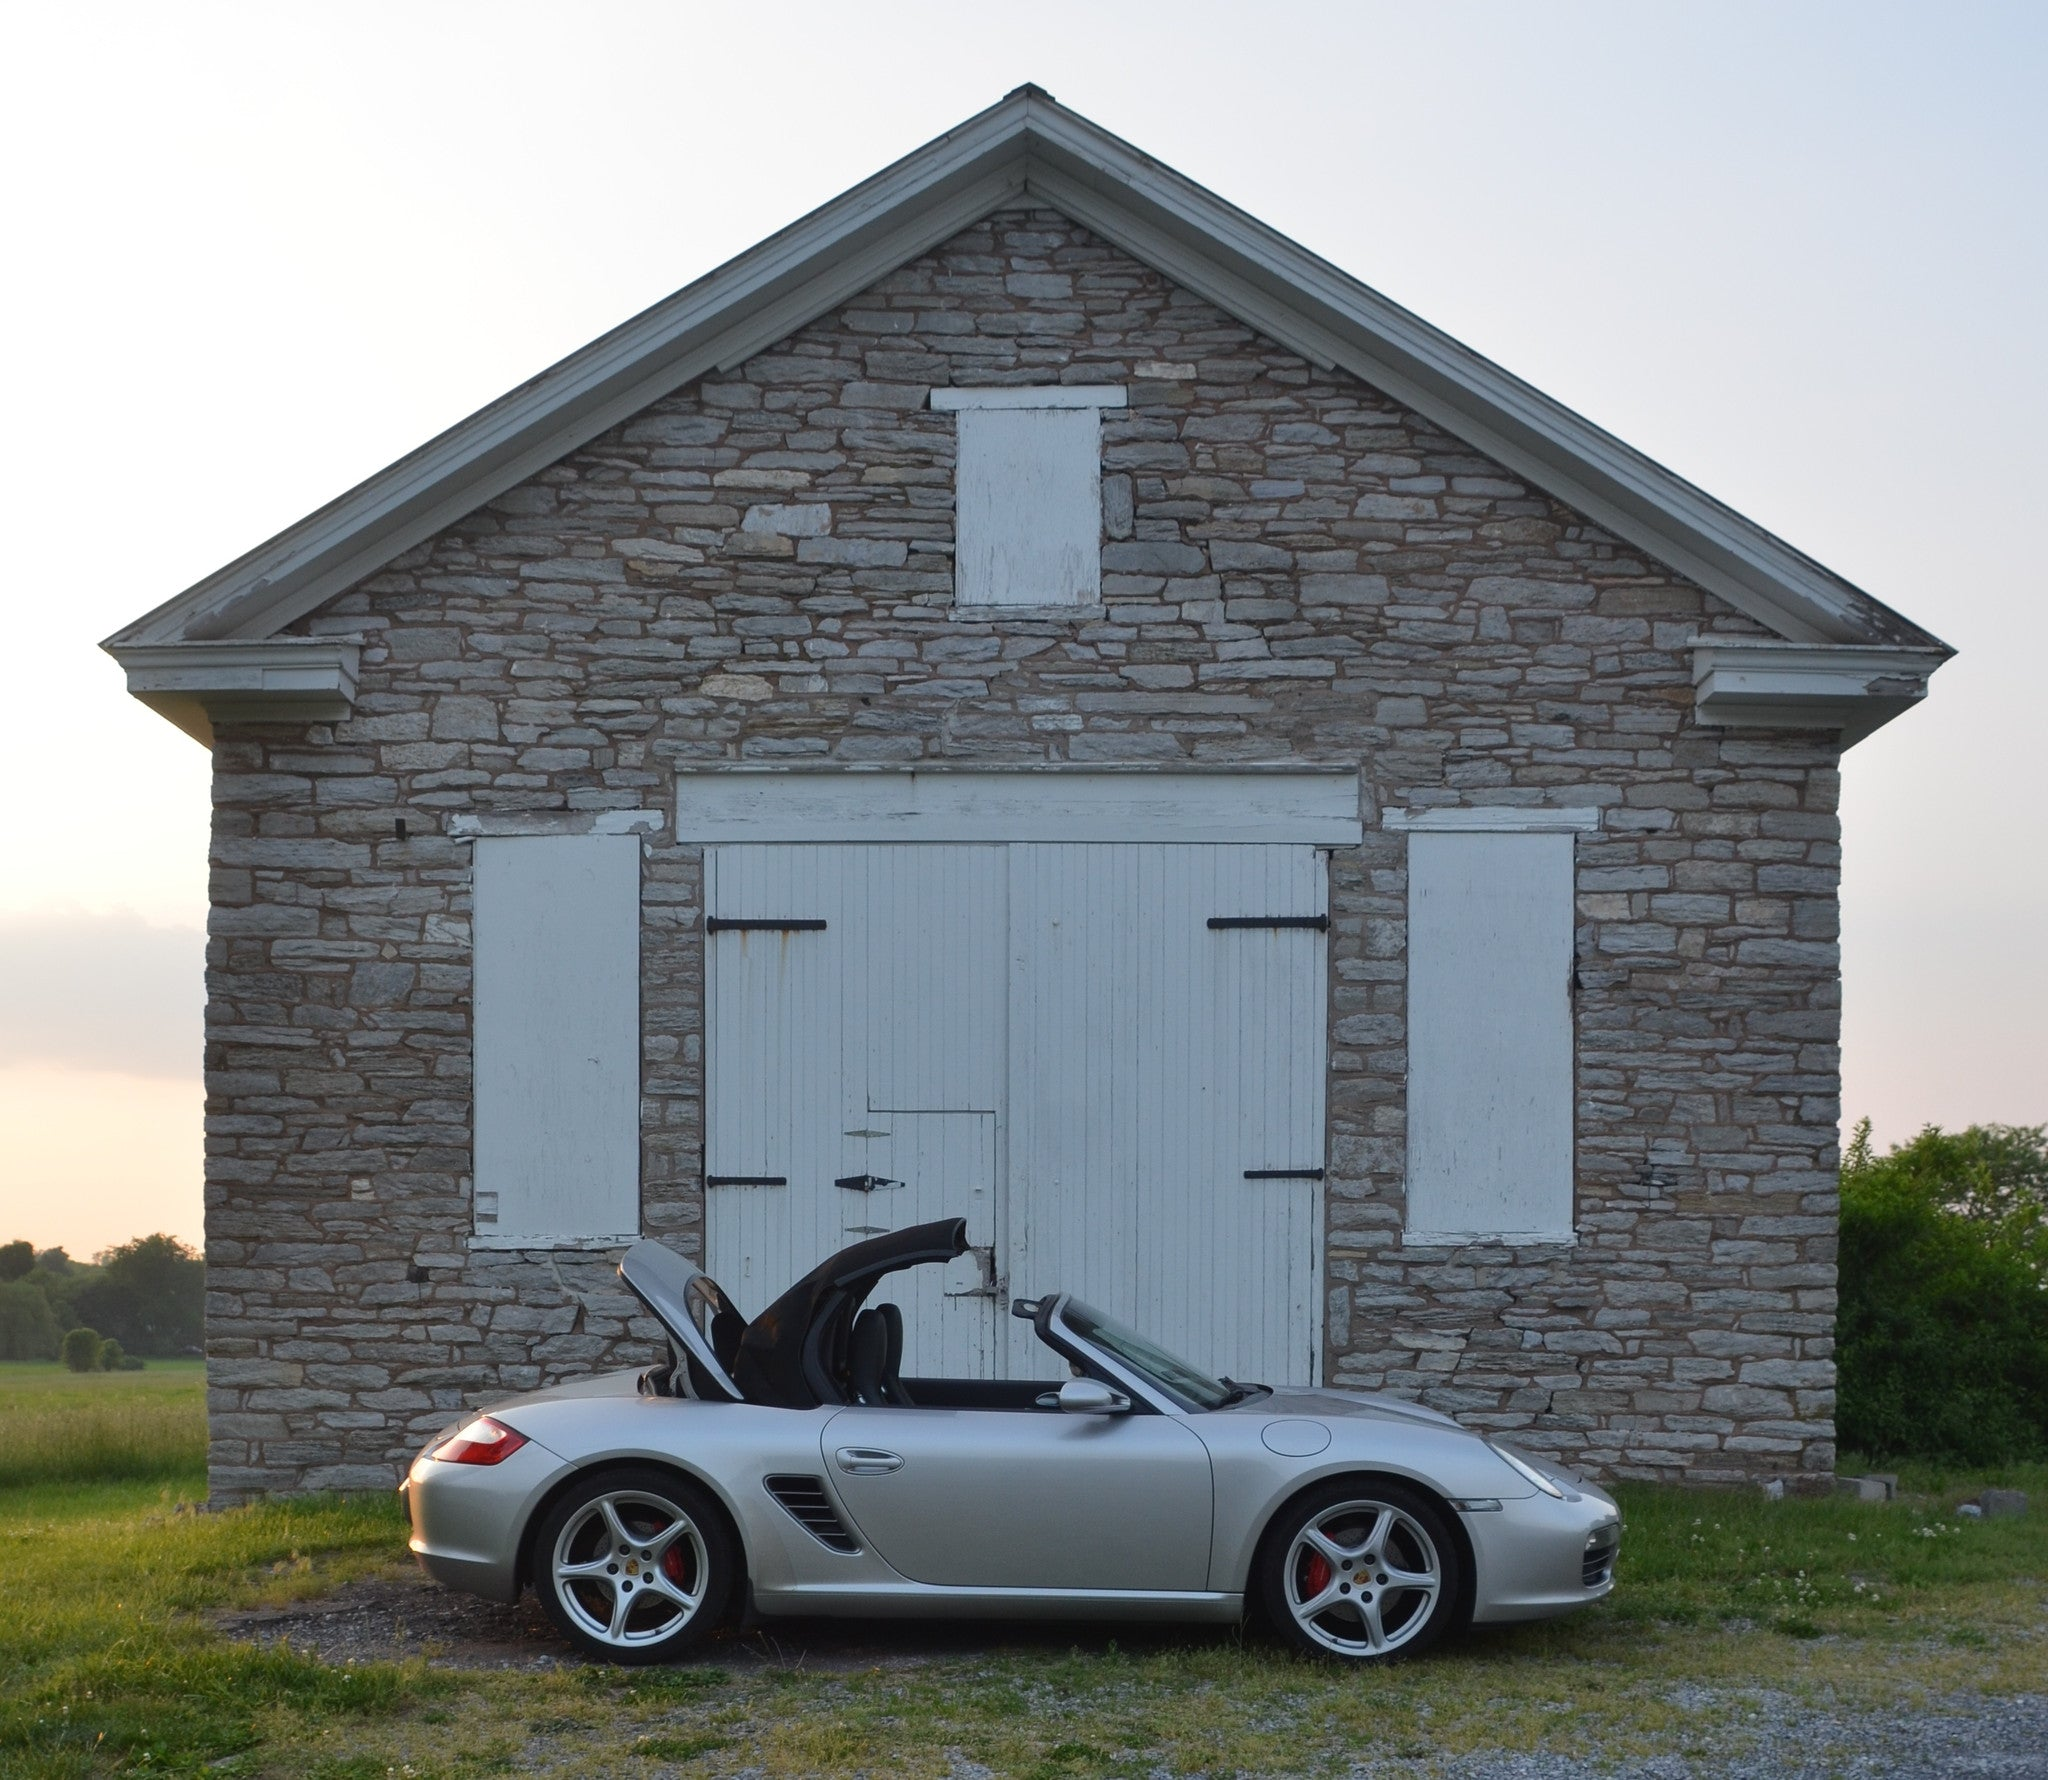 SOLD 987 Porsche Boxster S, 17500 miles on OEM IMS-Free 3.2 Porsche Engine